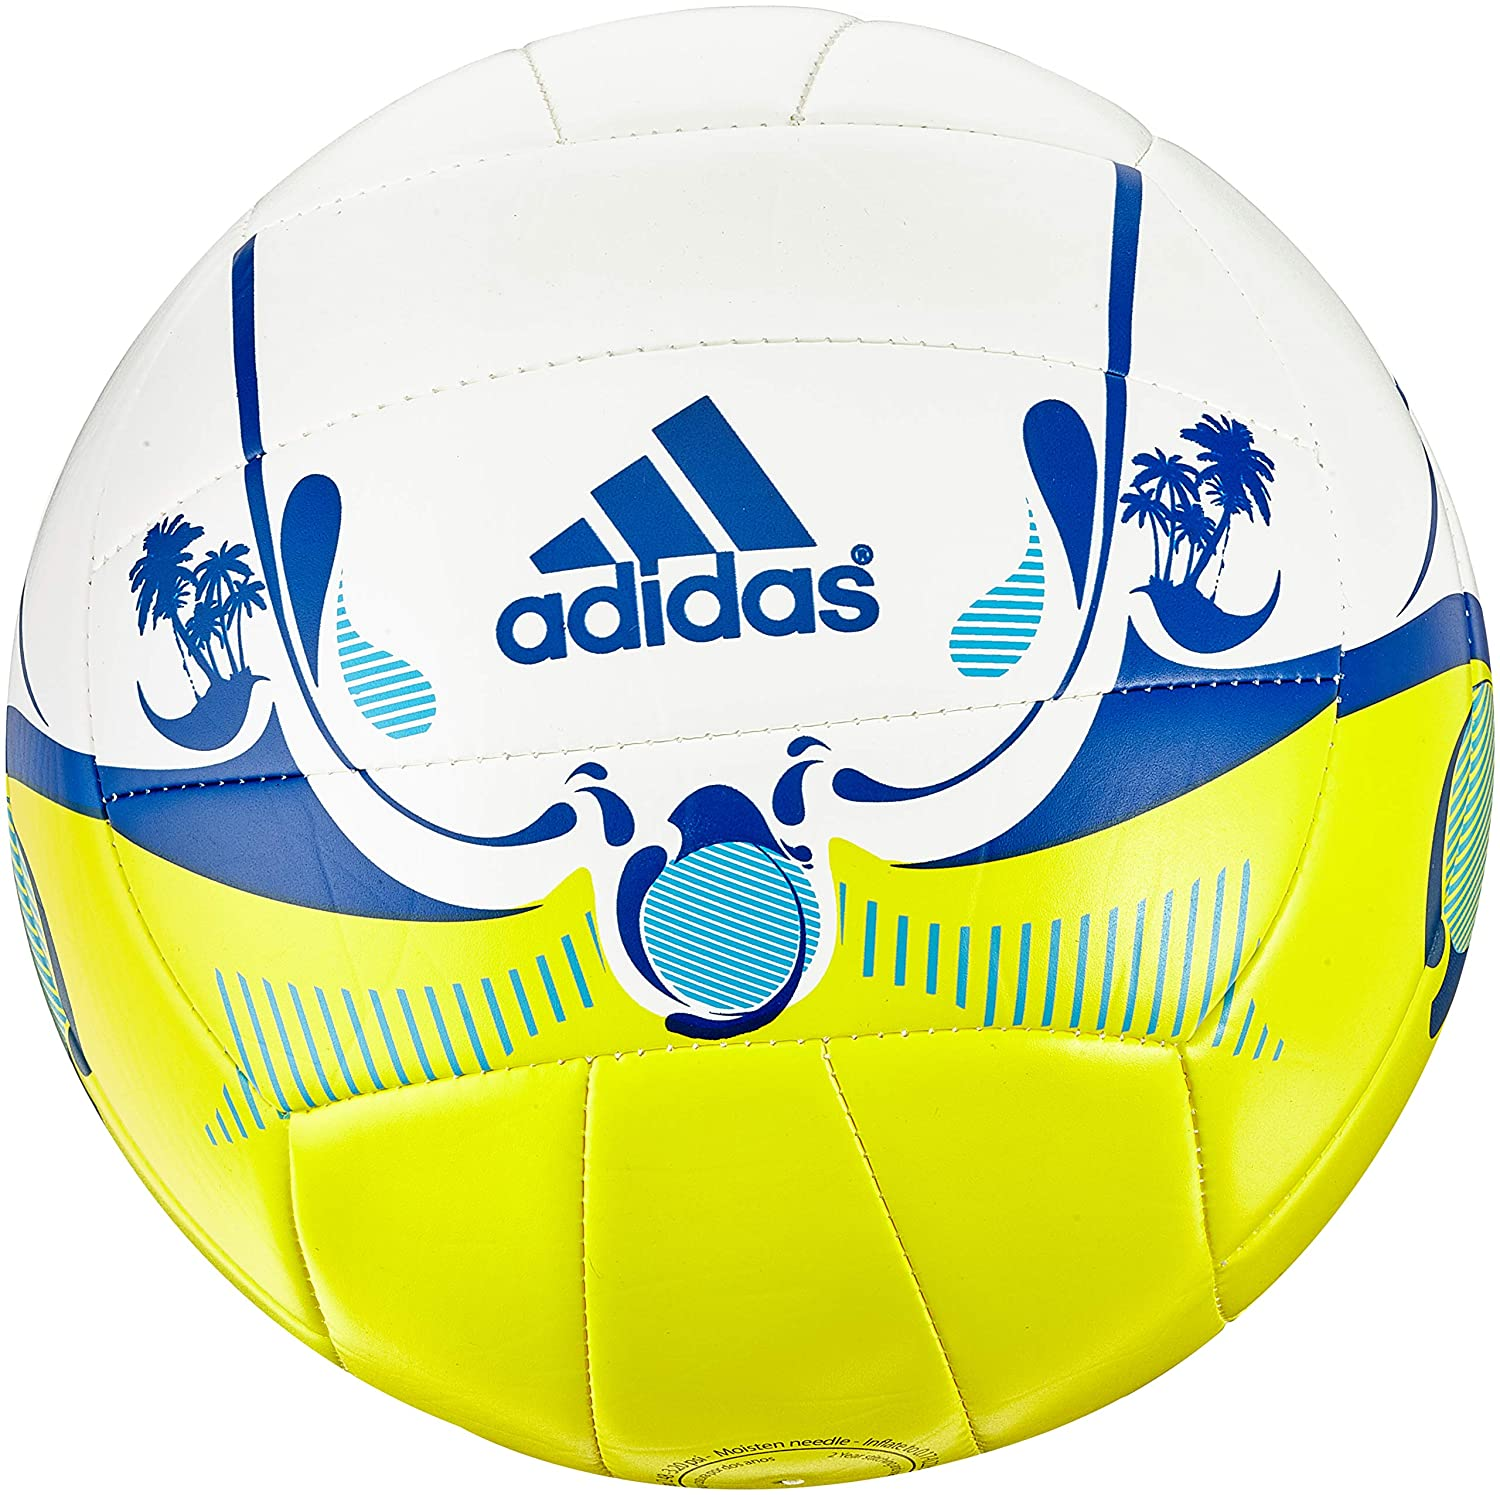 adidas Uni Beach Fun 2 Voleibol, Blanco, 5: Amazon.es: Deportes y ...